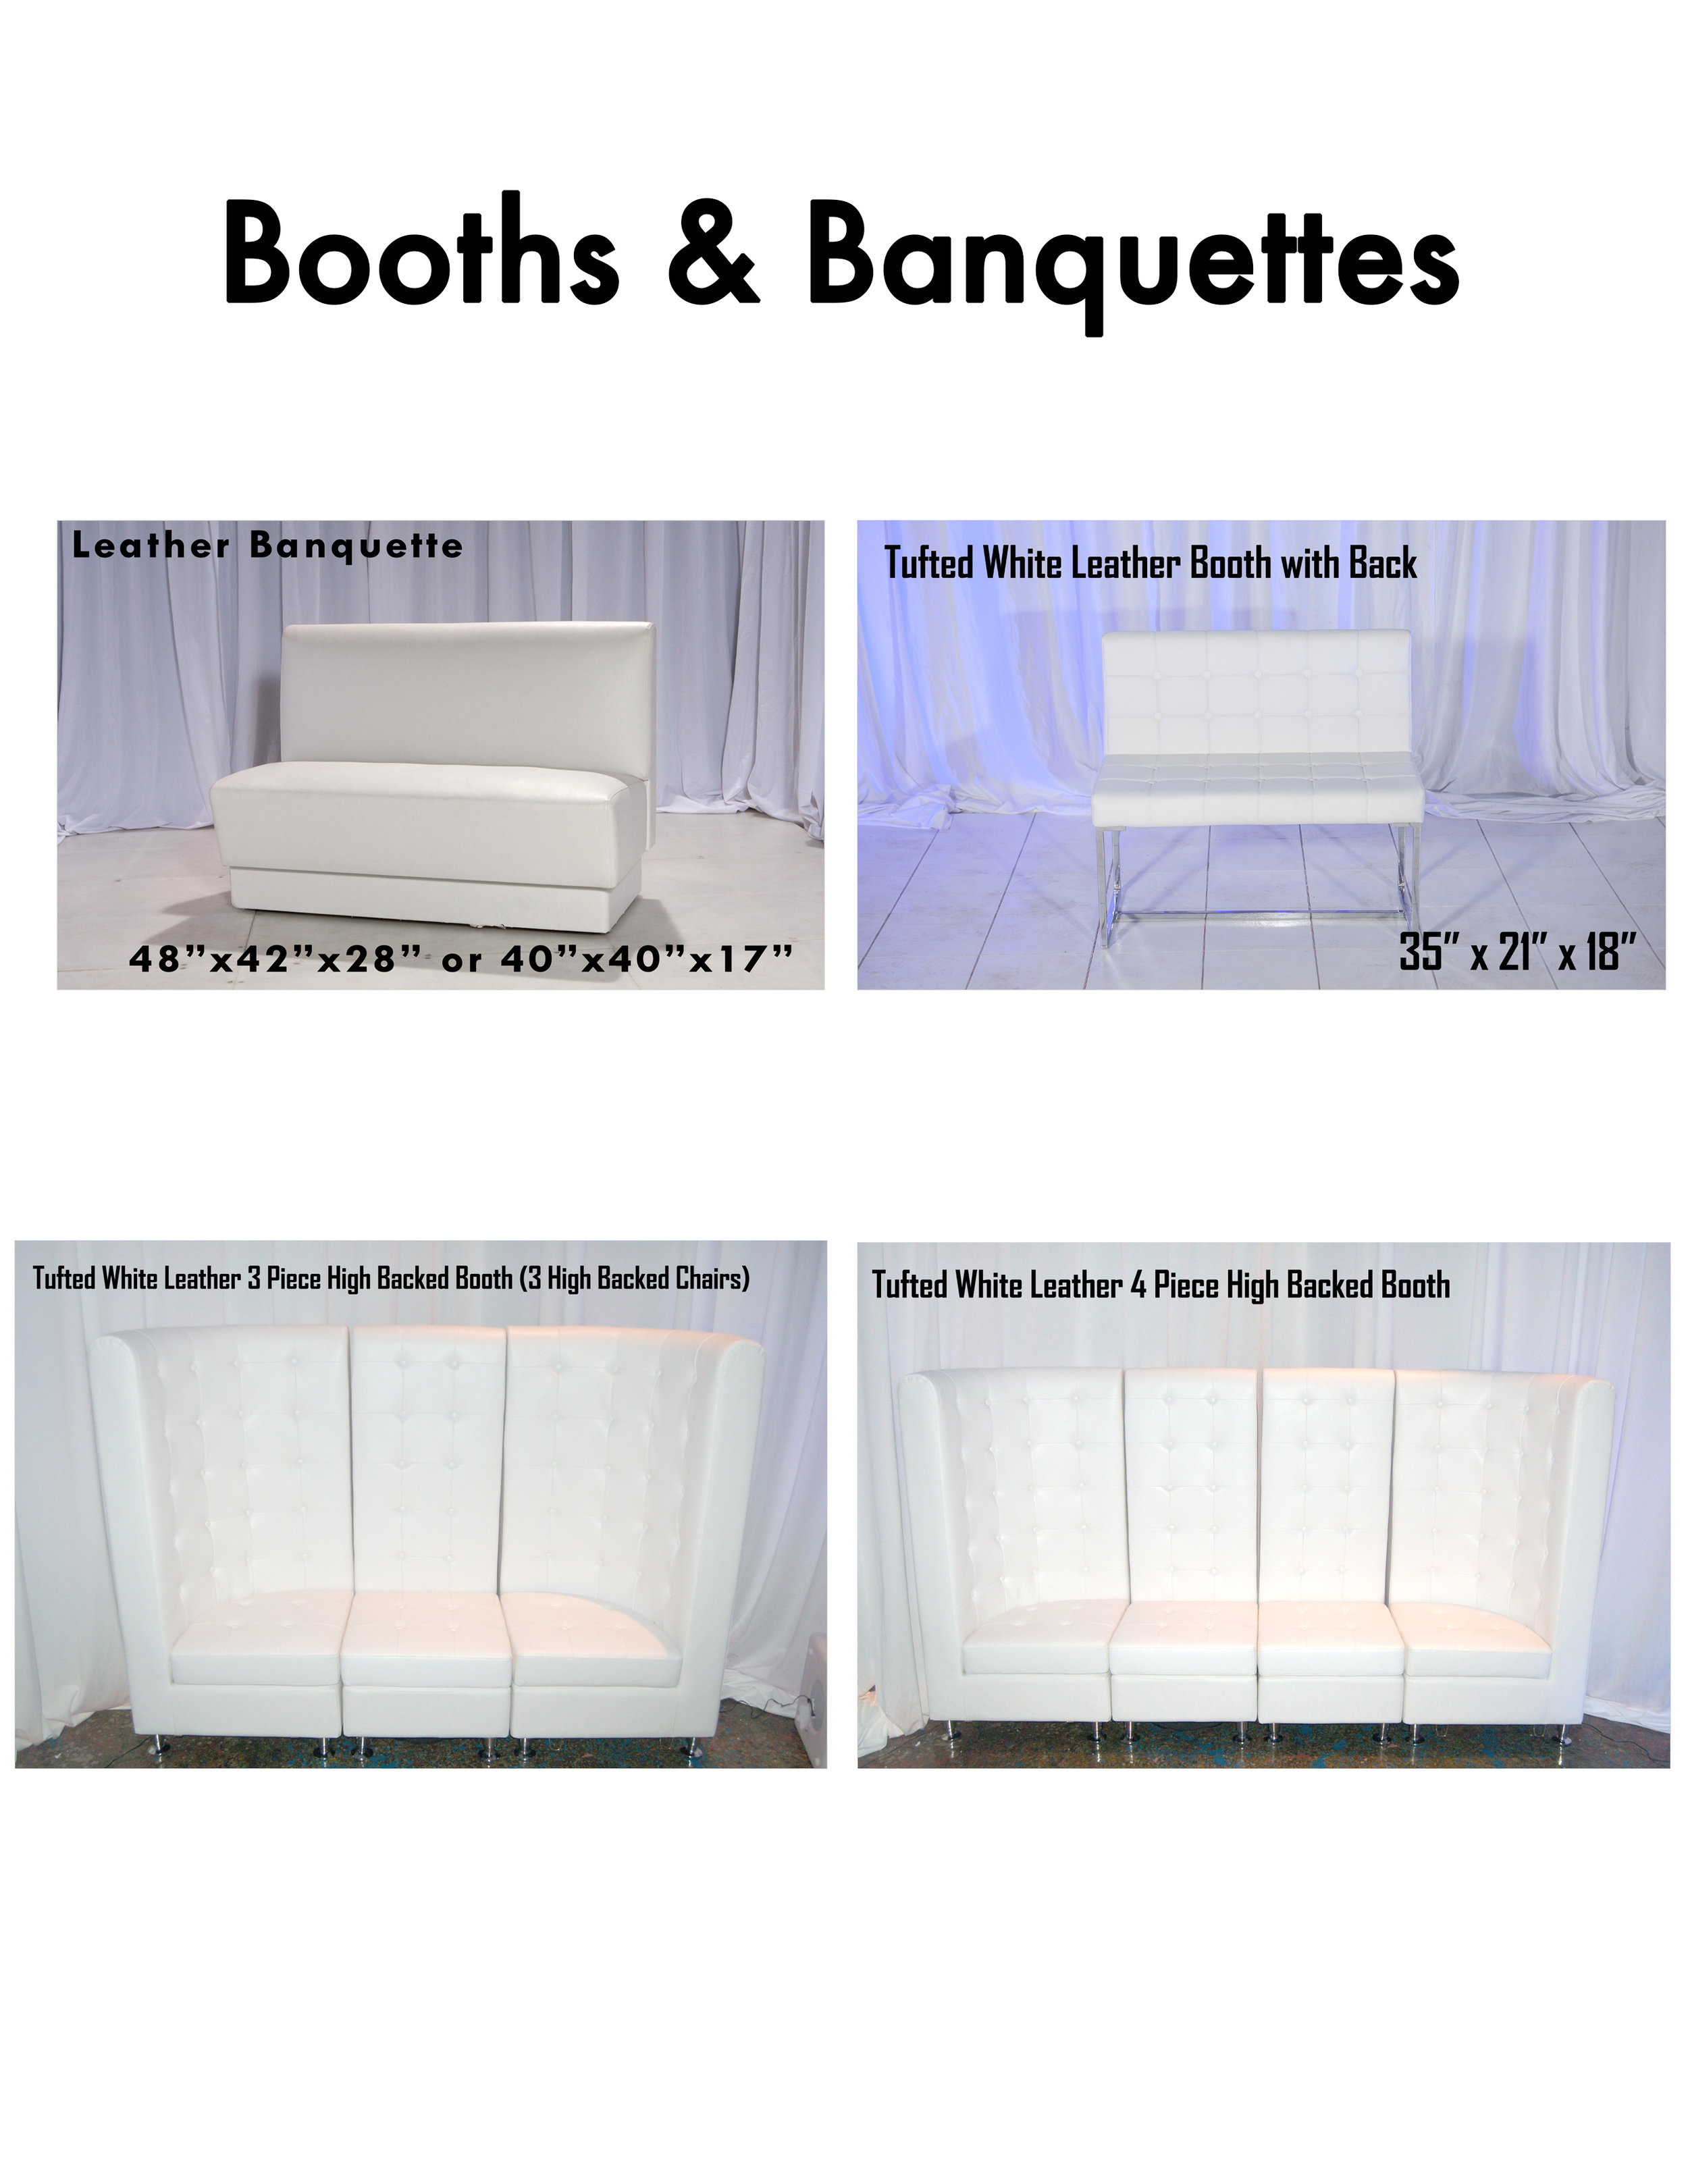 039-P38_Booths & Banquettes.jpg